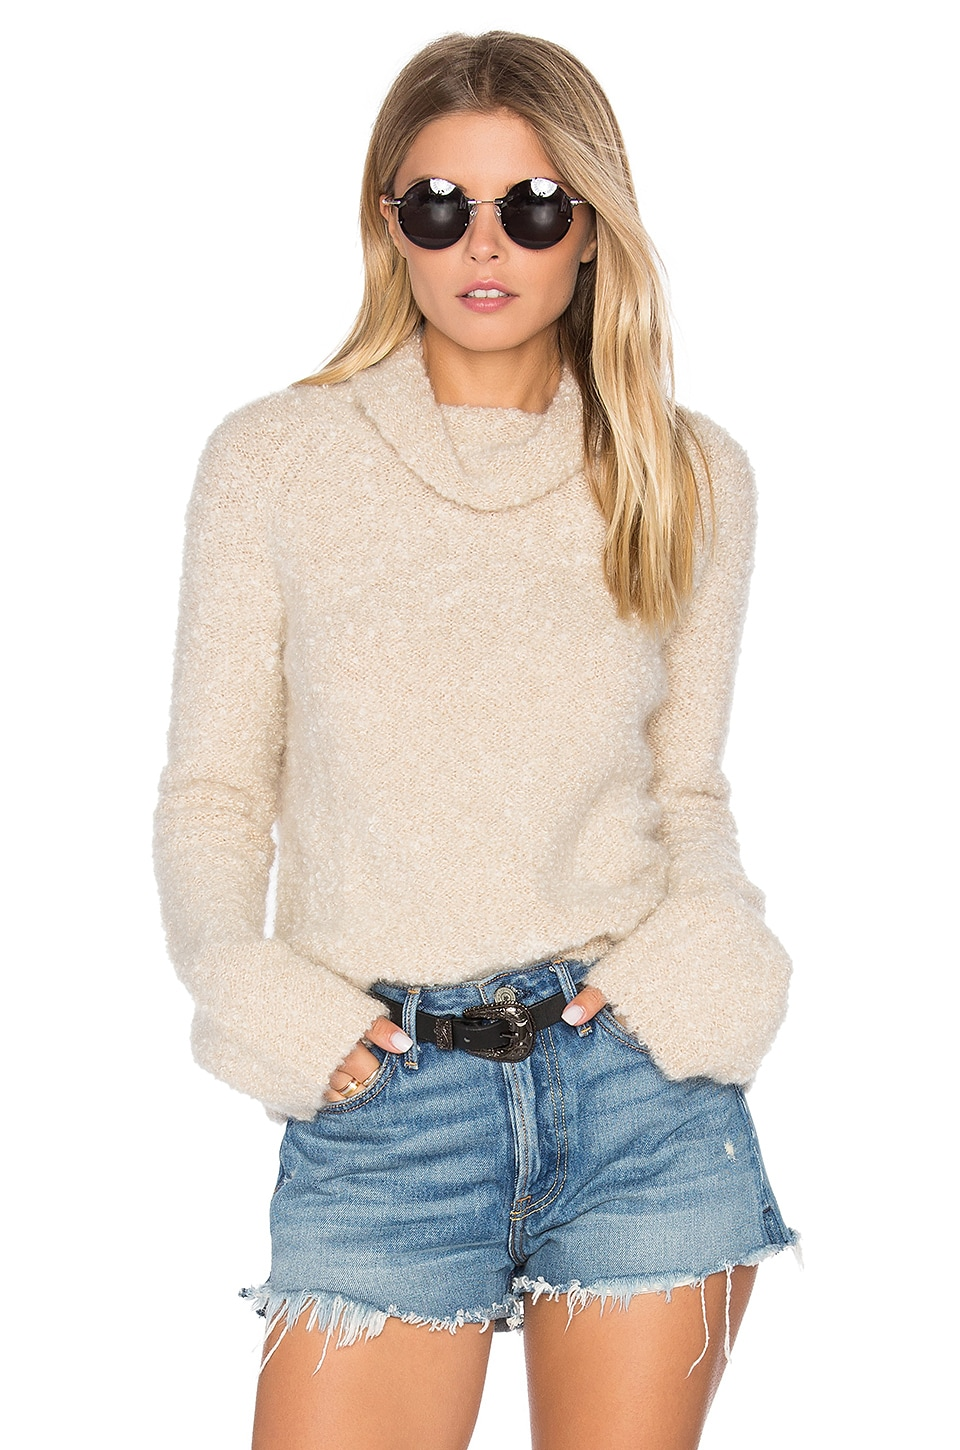 27 miles malibu Langely Sweater in Faune